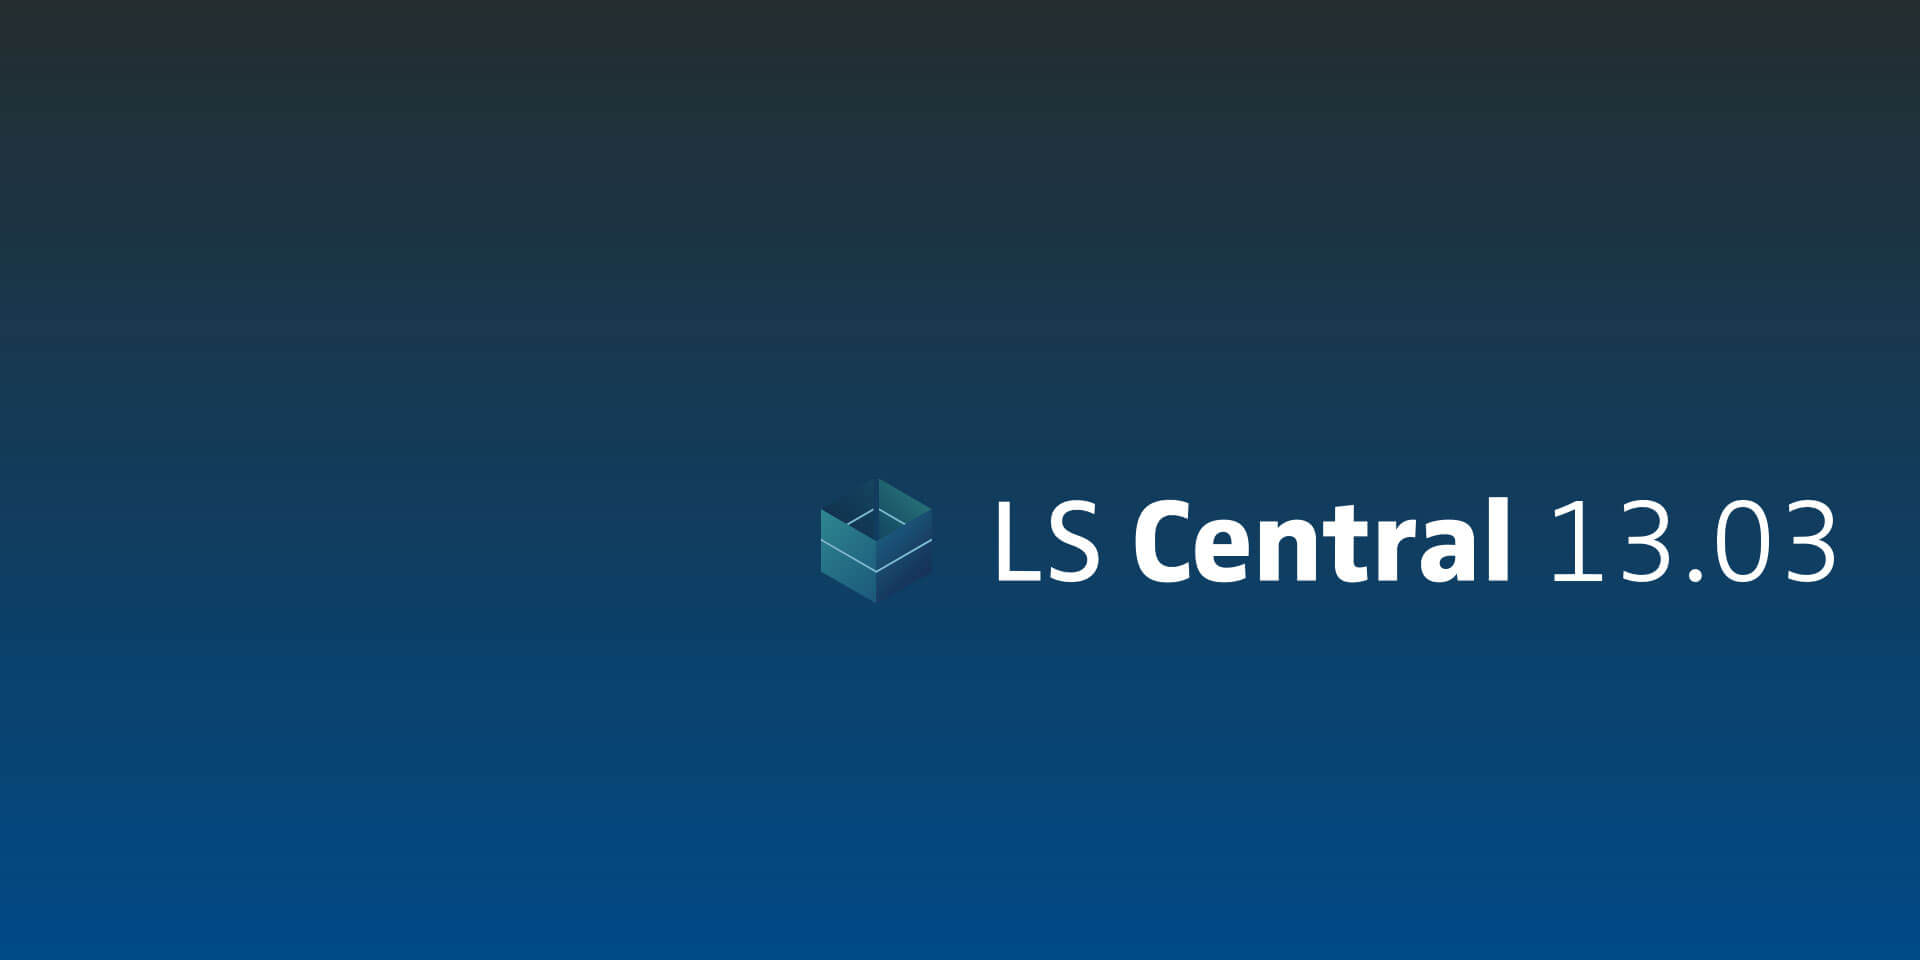 LS Central 13.03: safer transactions, extended search on mobile